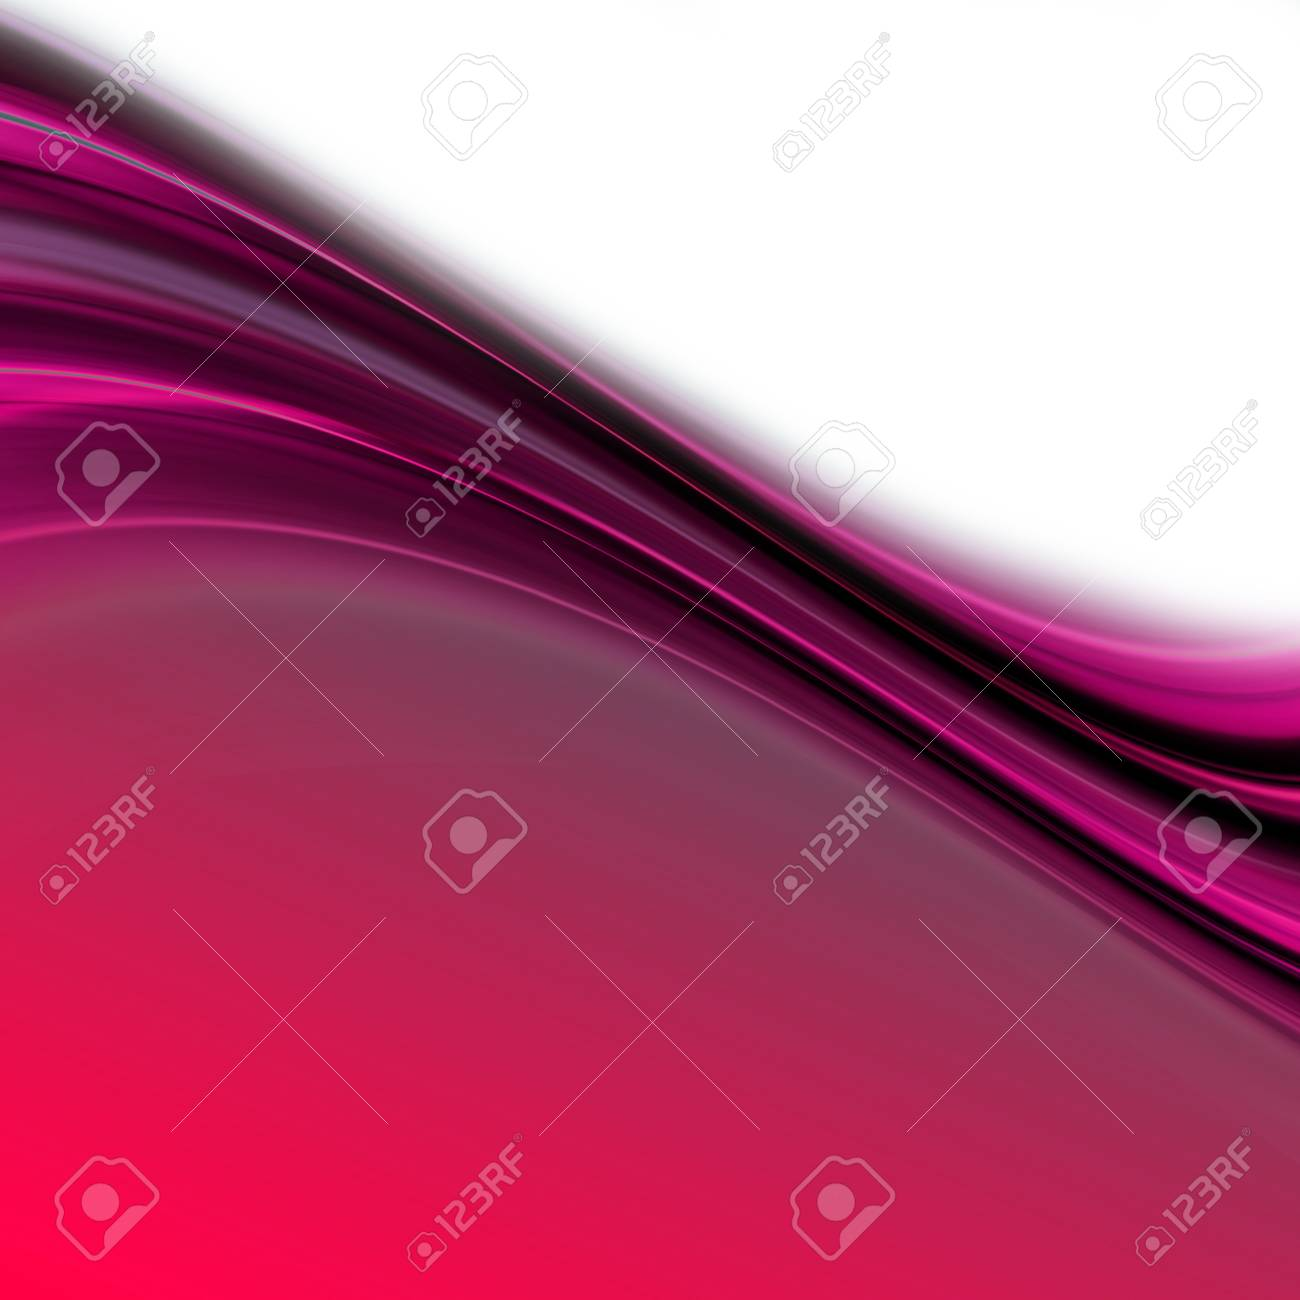 Abstract elegant background design with space for your text Stock Photo - 9990612